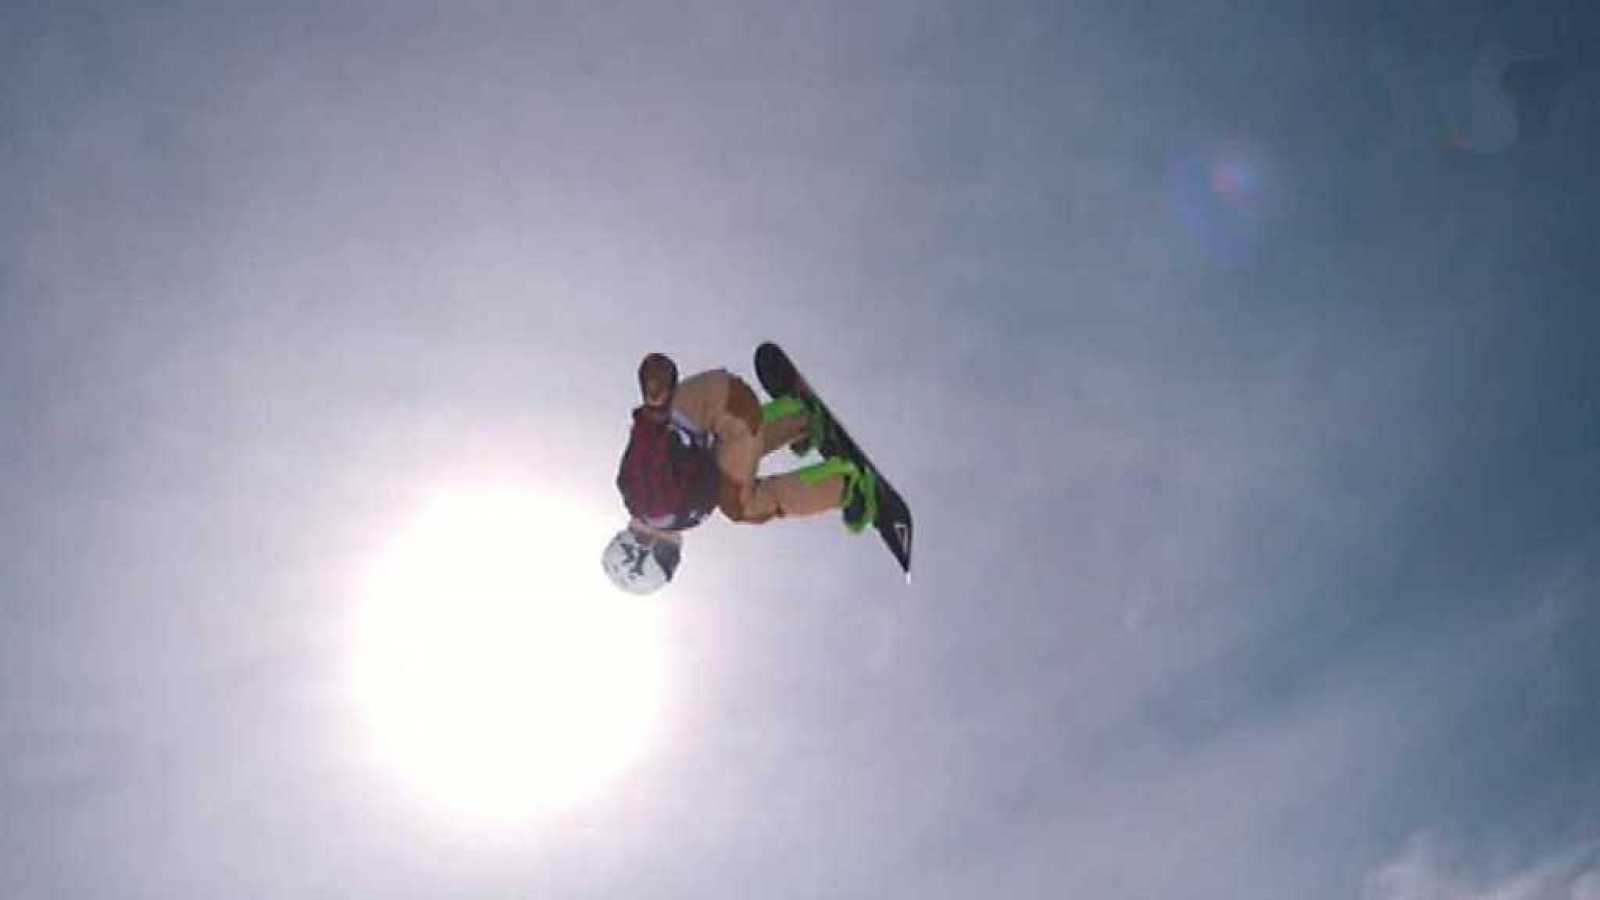 Snowboard - Total Fight Master of Freestyle - ver ahora